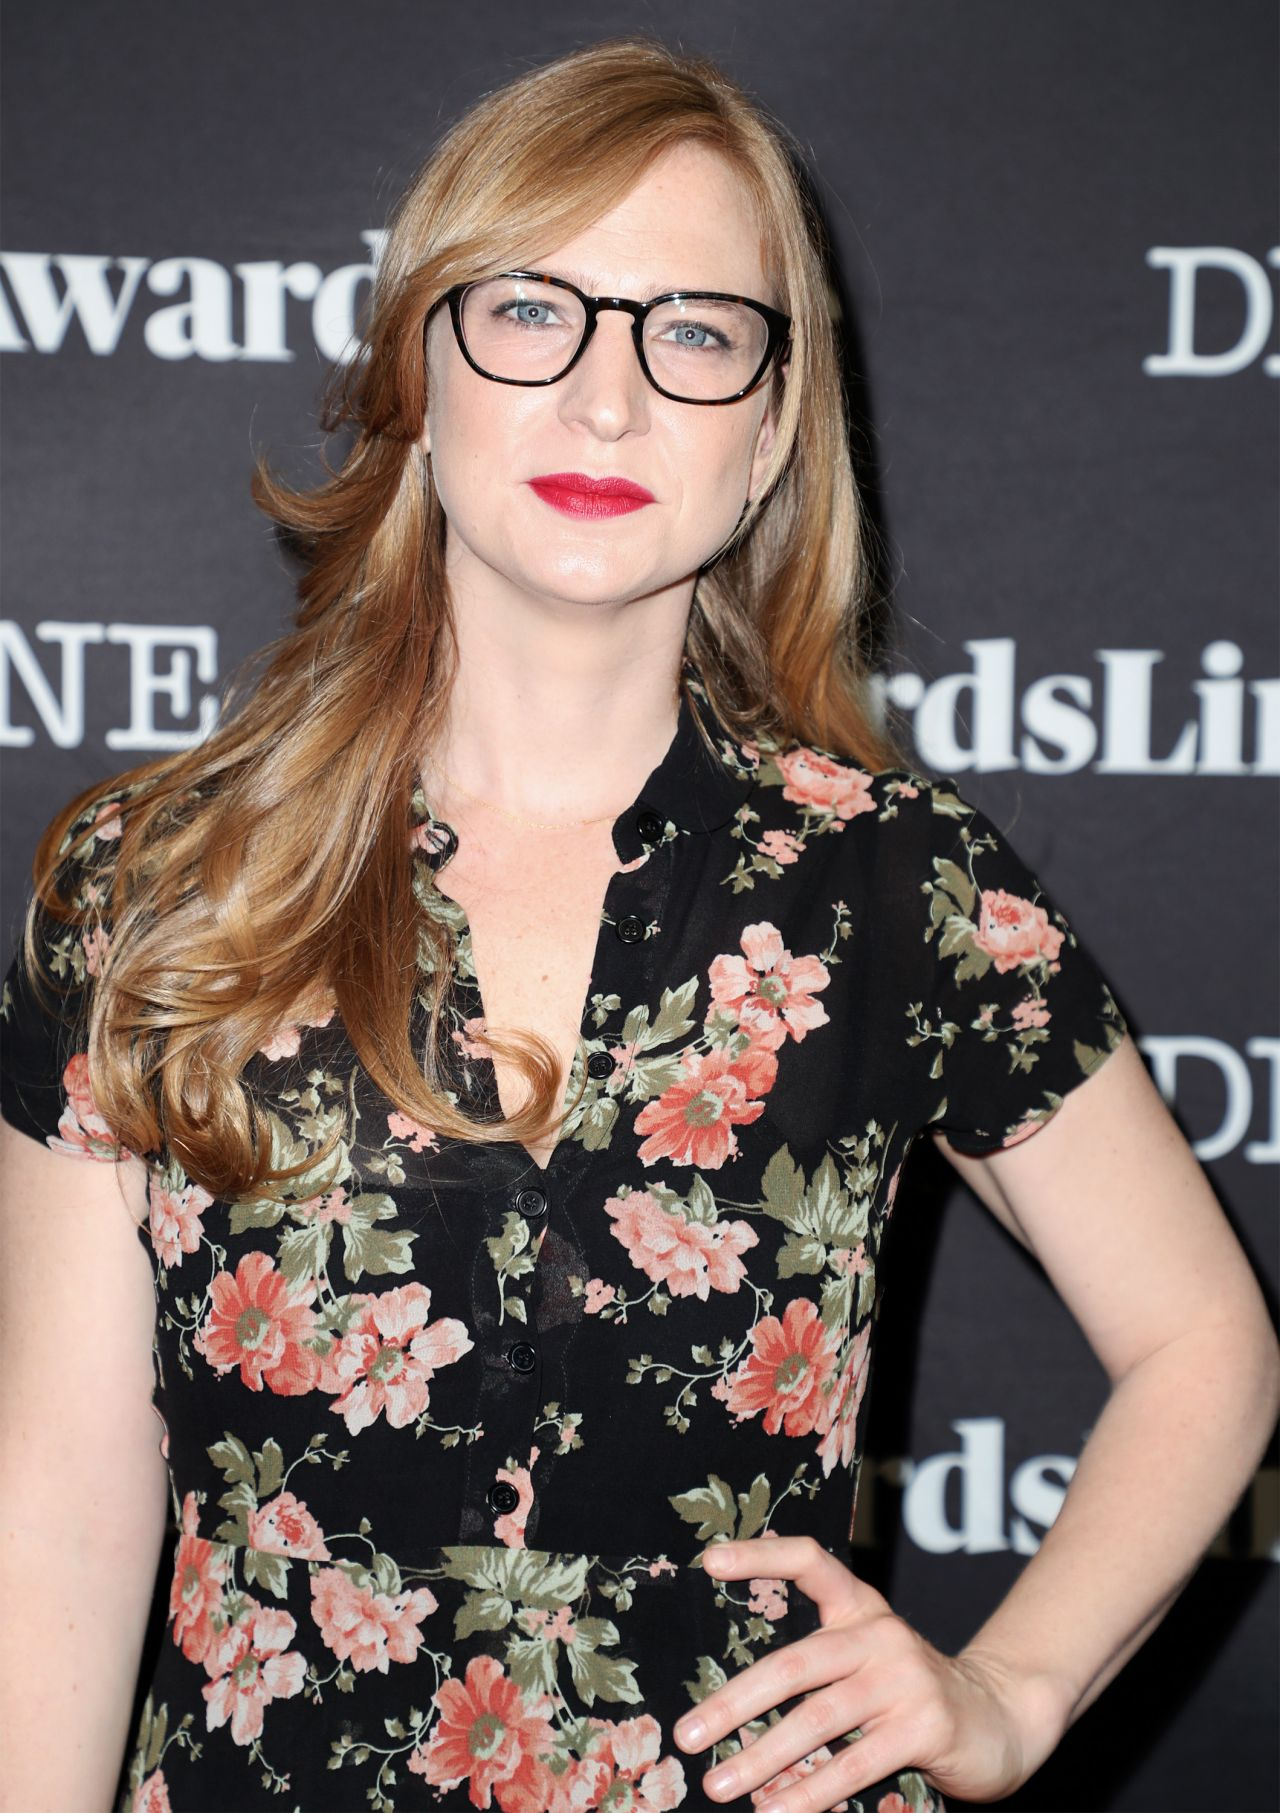 Helen Estabrook at Deadline's The Contenders Emmys Event in Los Angeles 4/9/2017